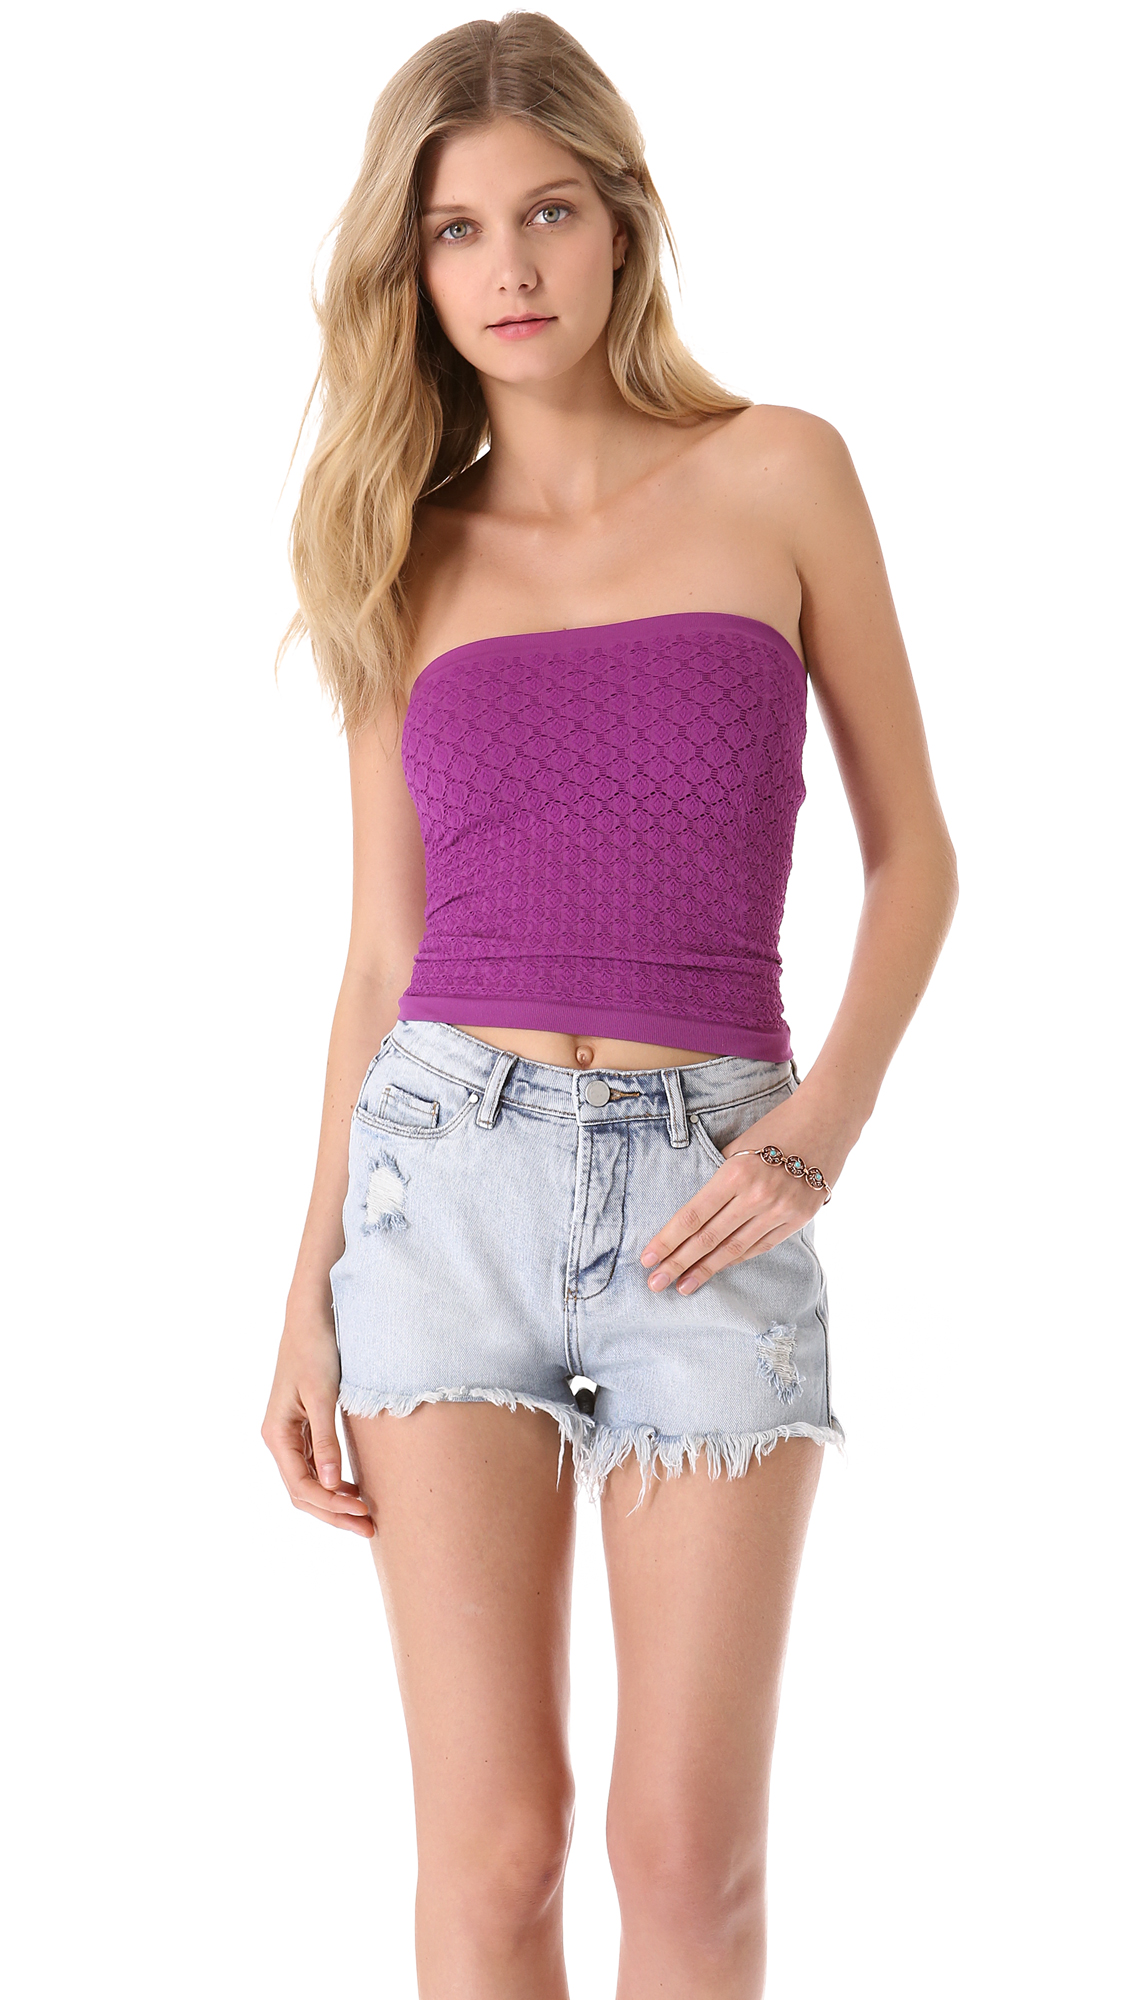 Lyst - Free People Seamless Diamond Textured Tube Top In -6763